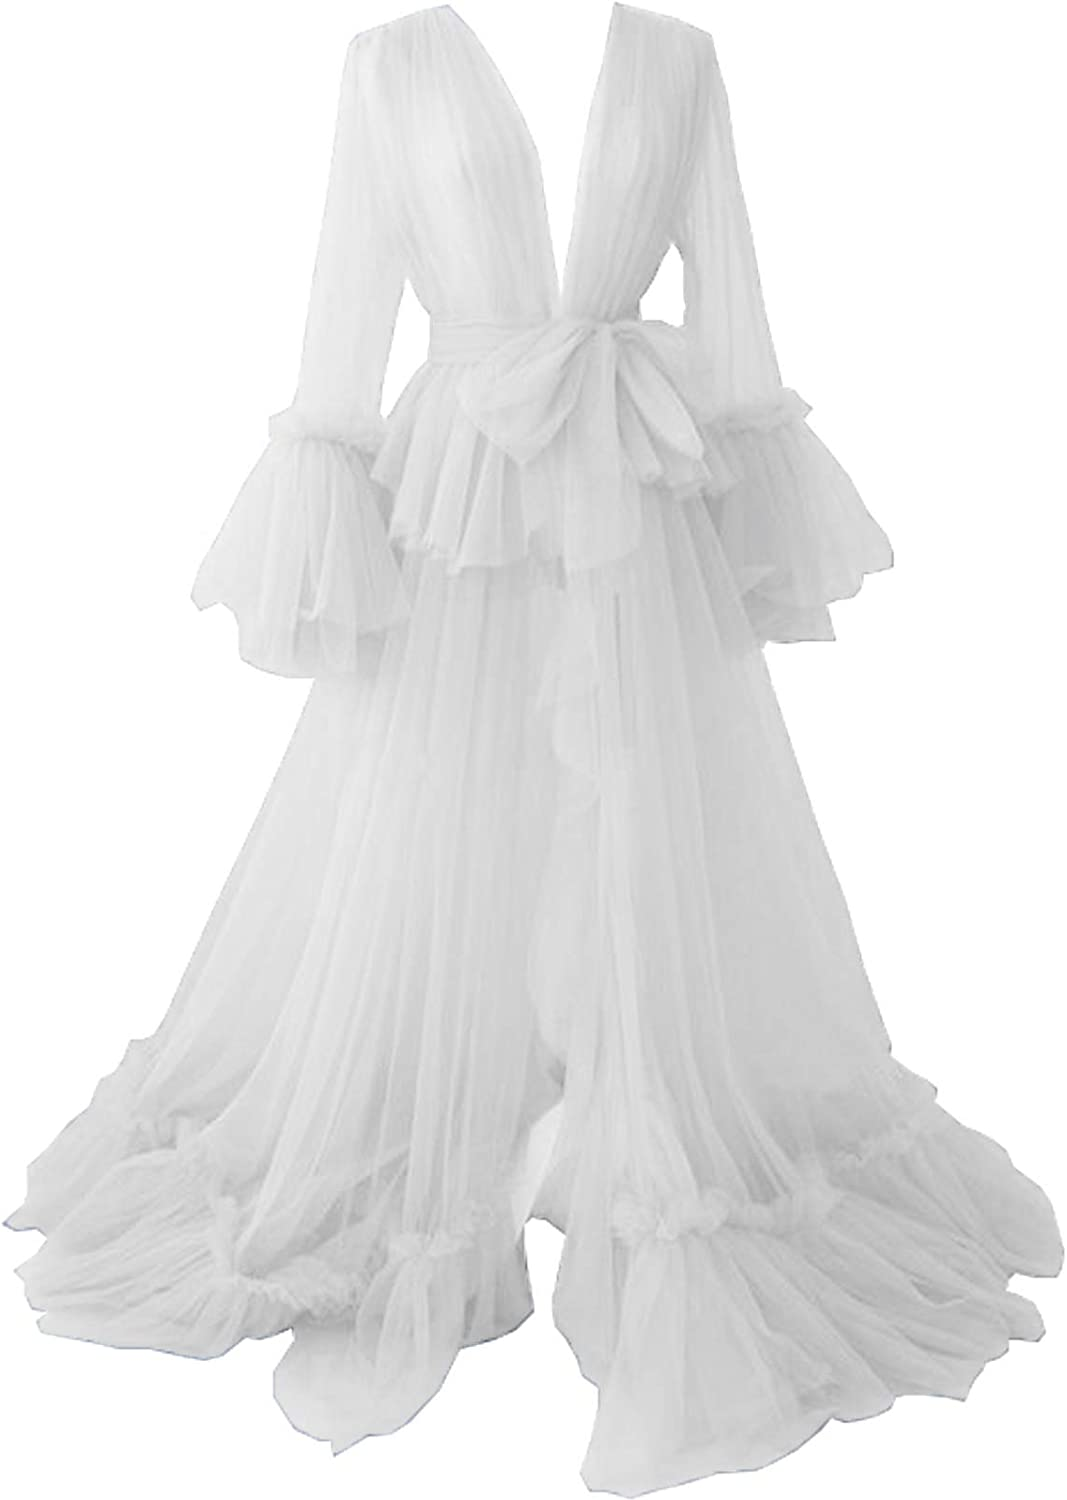 Tianzhihe Sexy Tulle Robe Long Illusion Maternity Photoshoot Bridal Lingerie Dressing Gown Nightgown